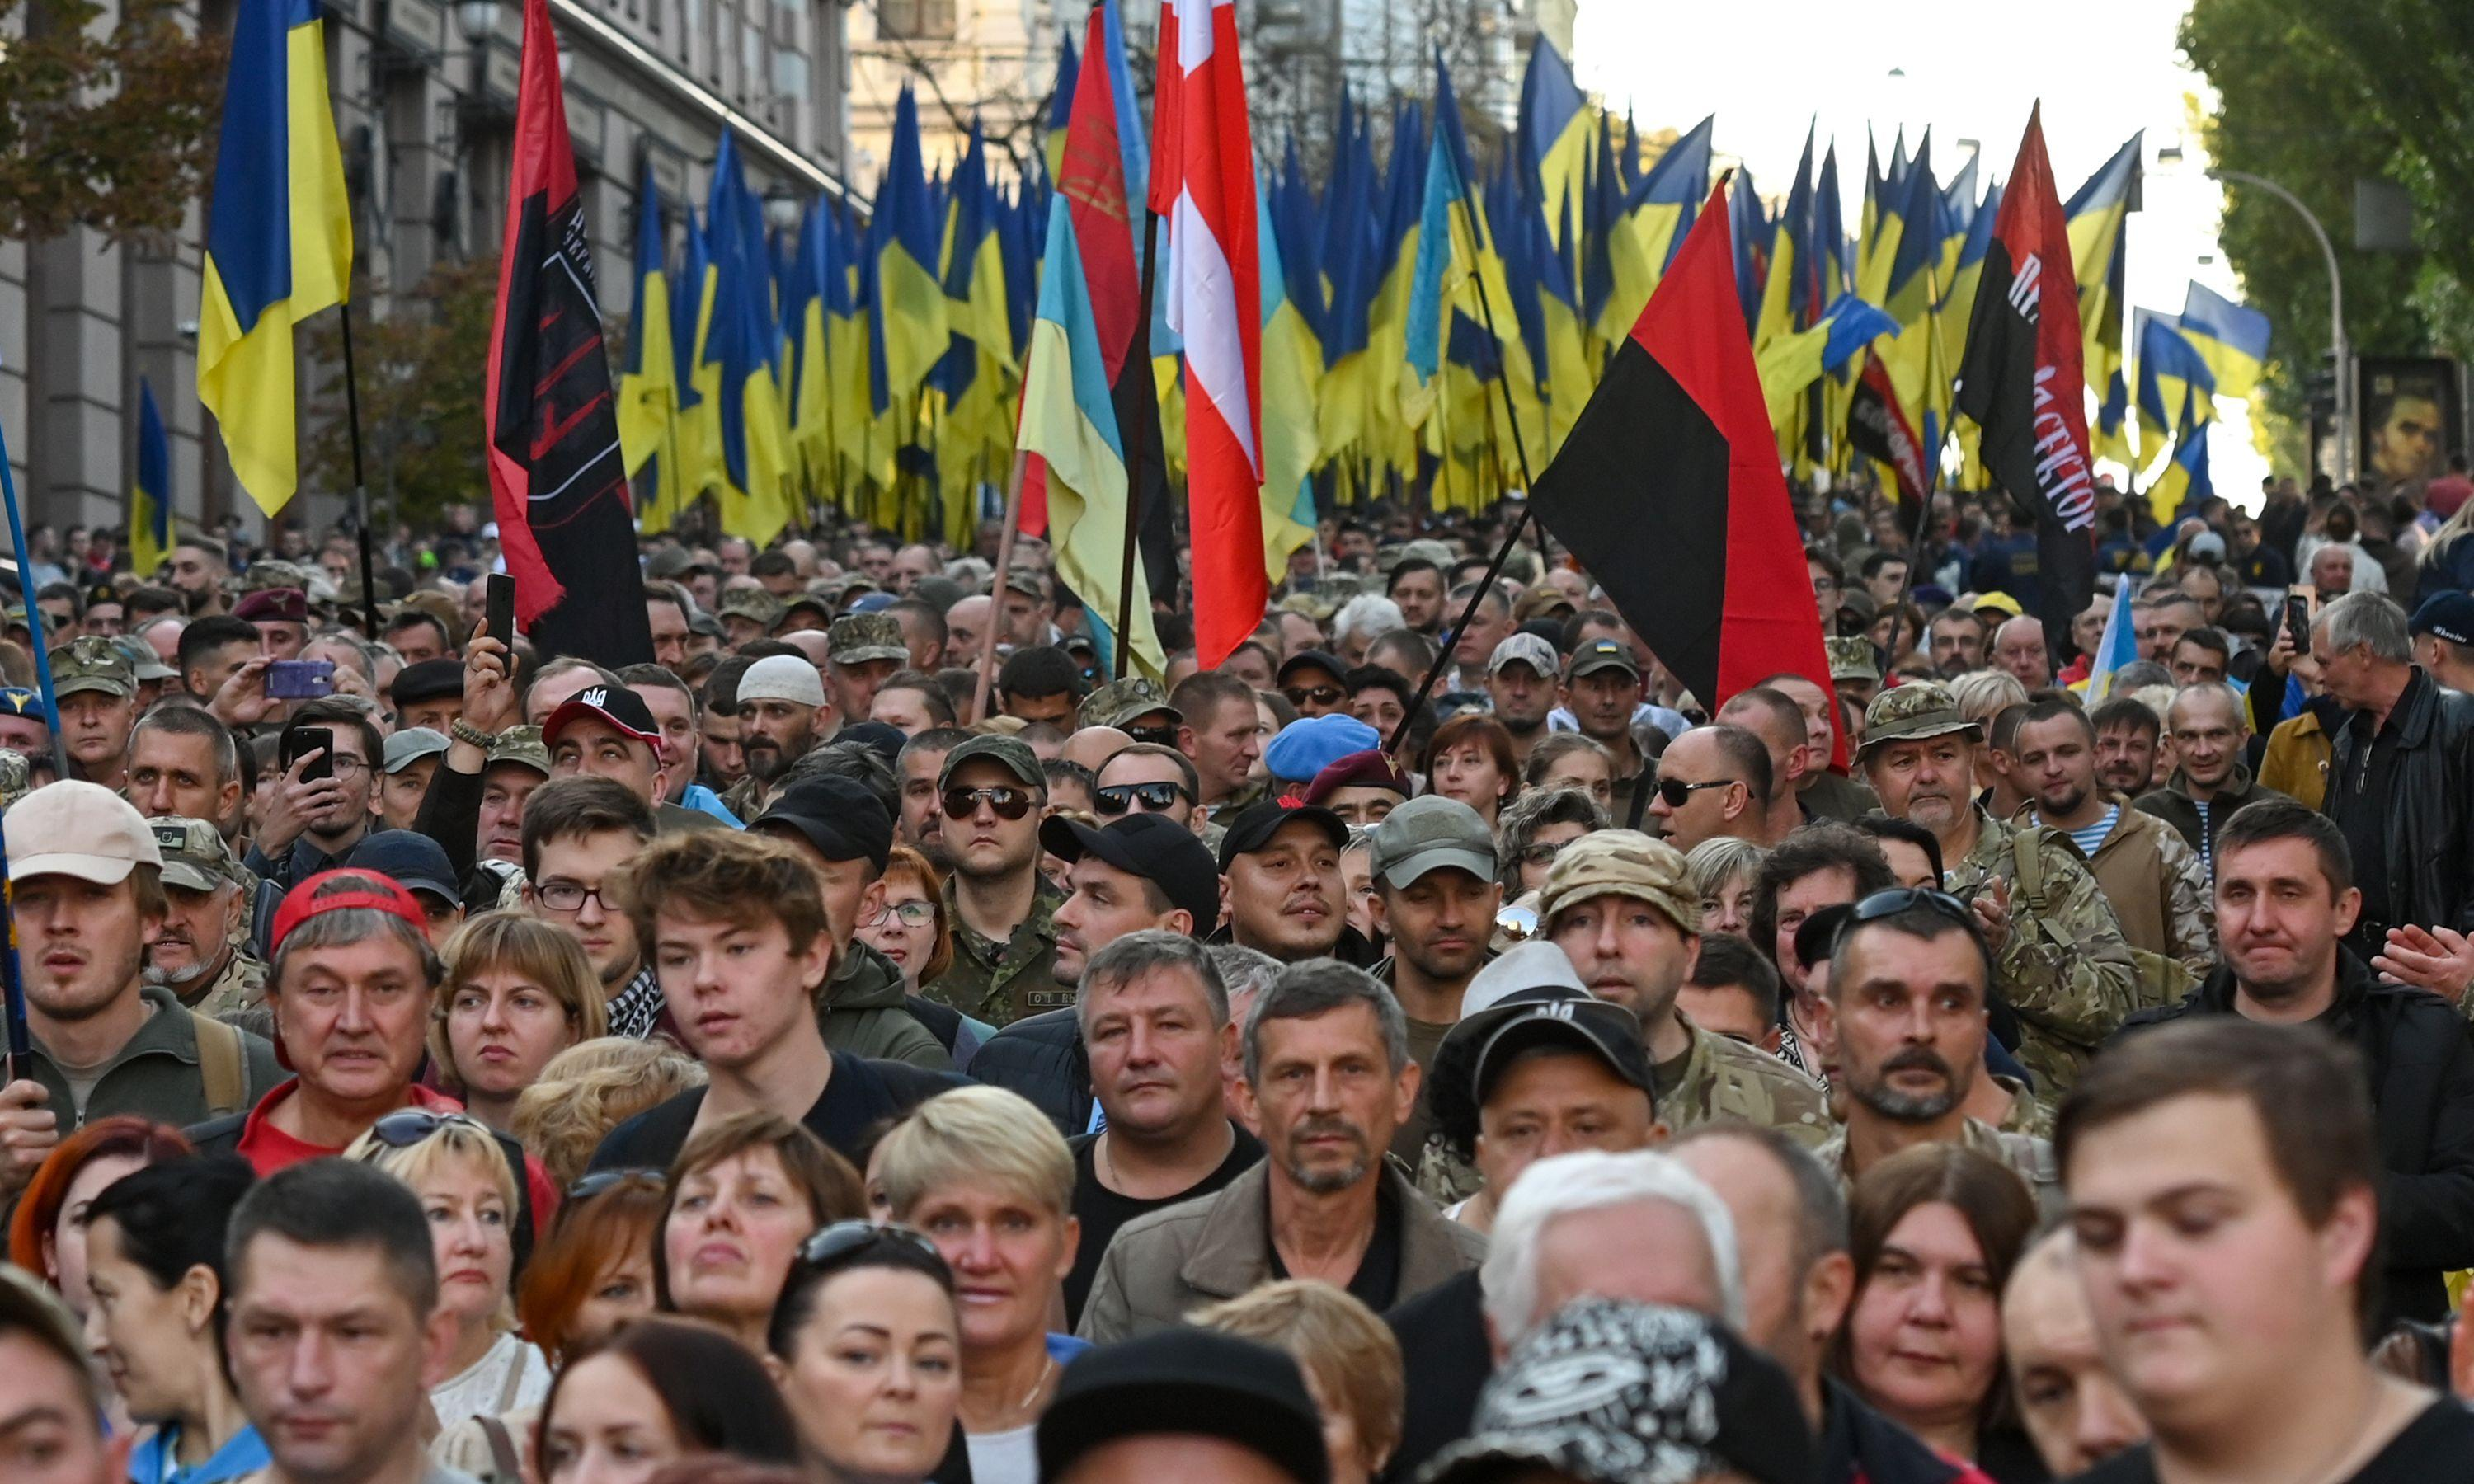 Thousands march in Kyiv to oppose east Ukraine peace plan